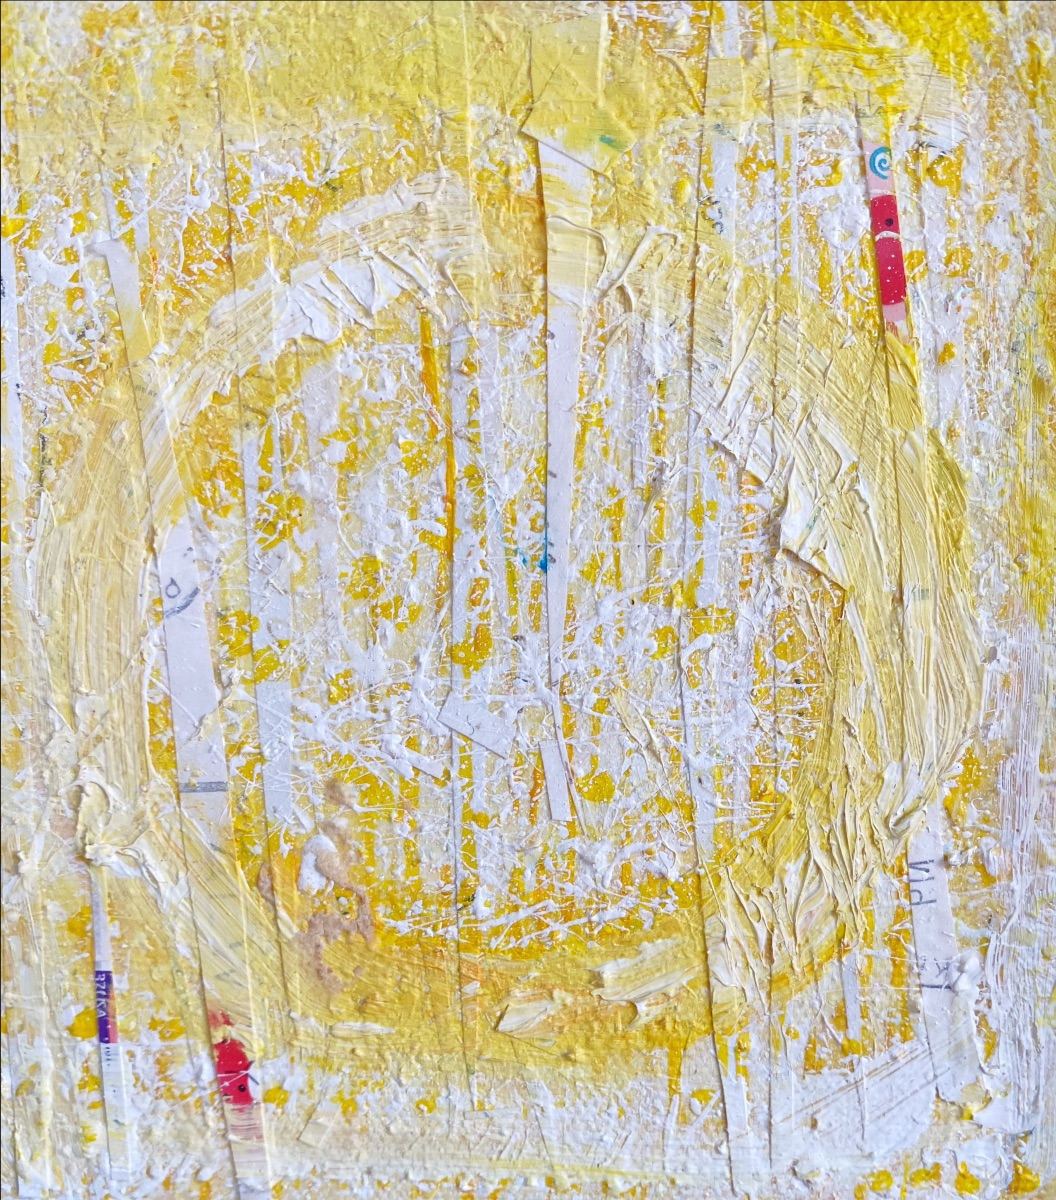 mixed-media art piece with acrylic yellow paint and vertical strips of white paper glued on the canvas for added texture.